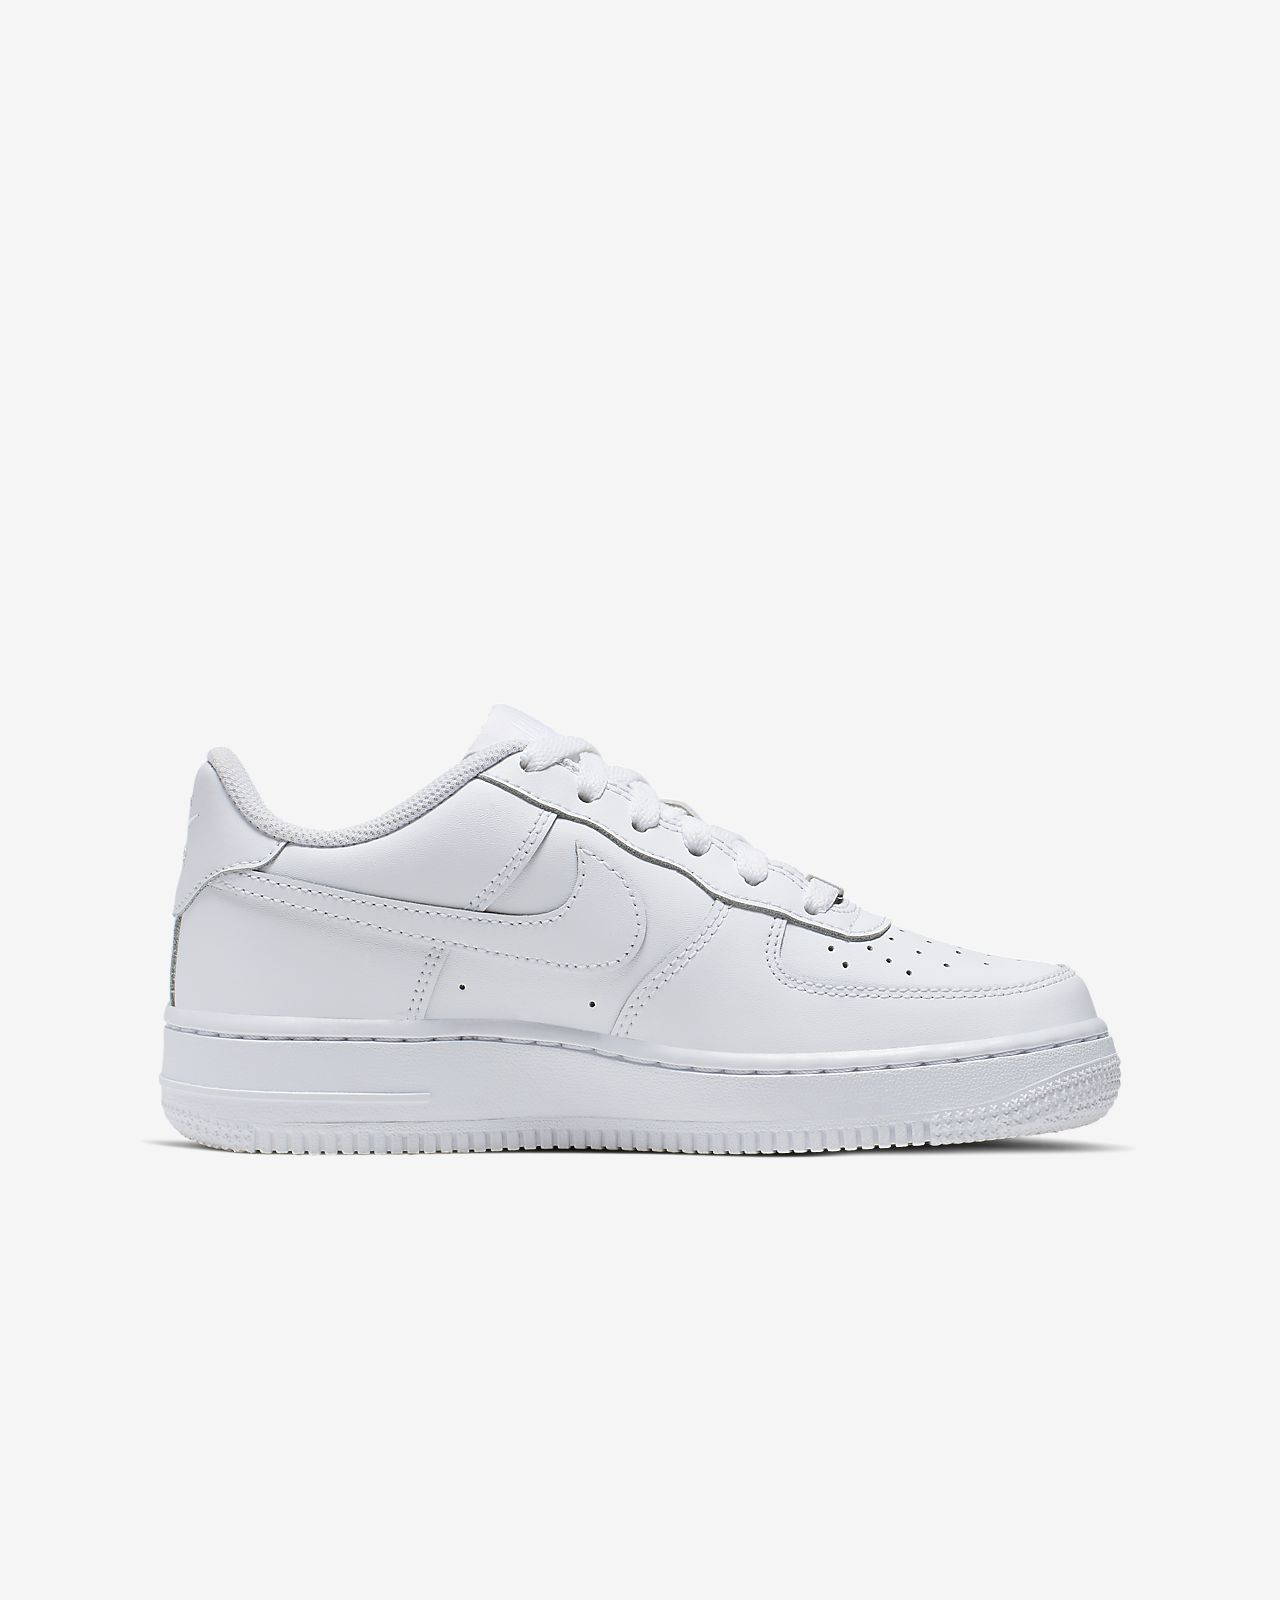 4214ec5dd08 Nike Air Force 1 Big Kids  Shoe. Nike.com